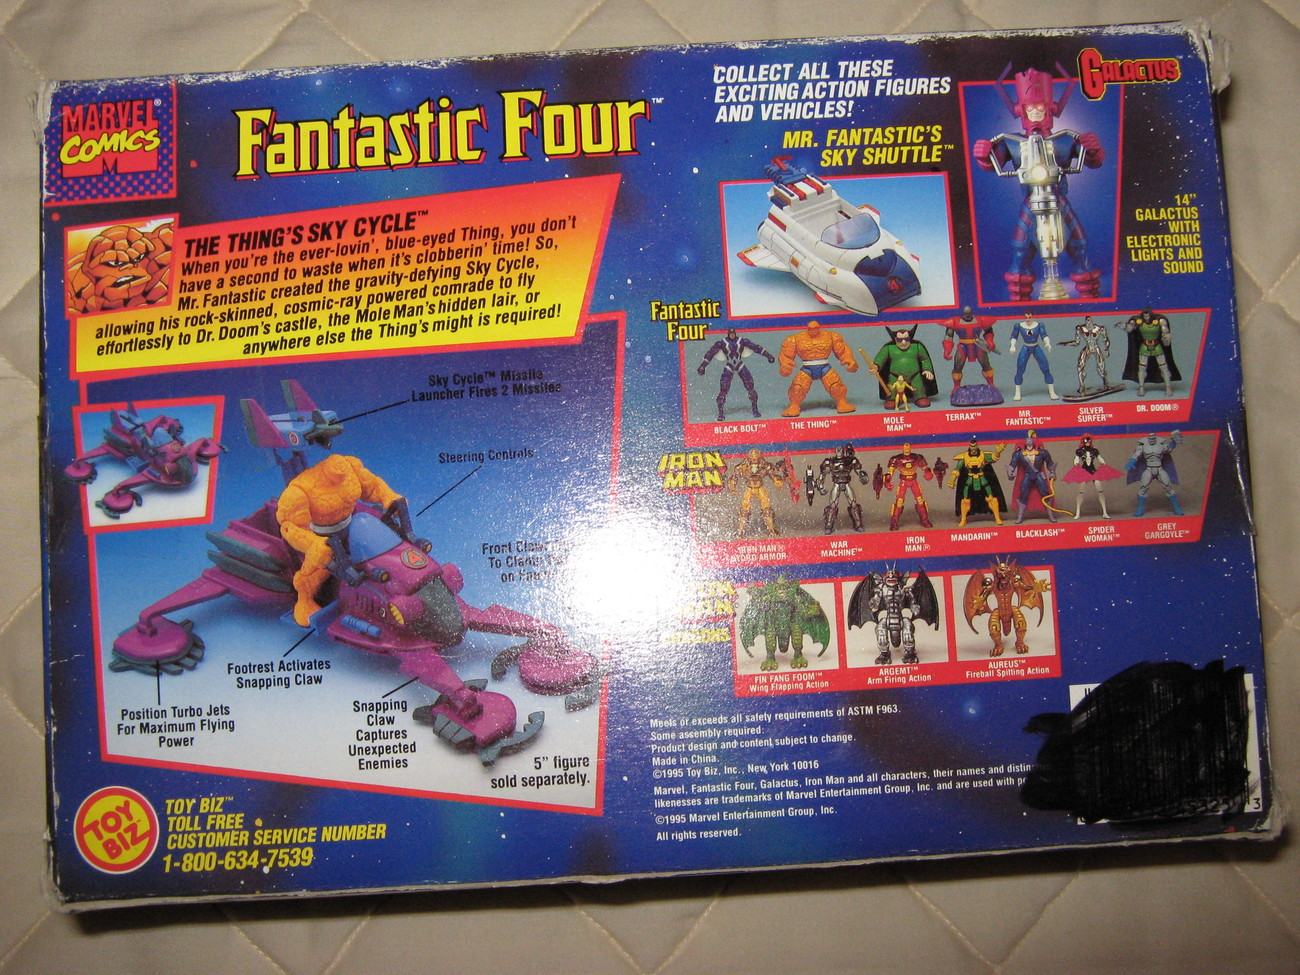 Fantastic Four,the Thing's Sky Cycle